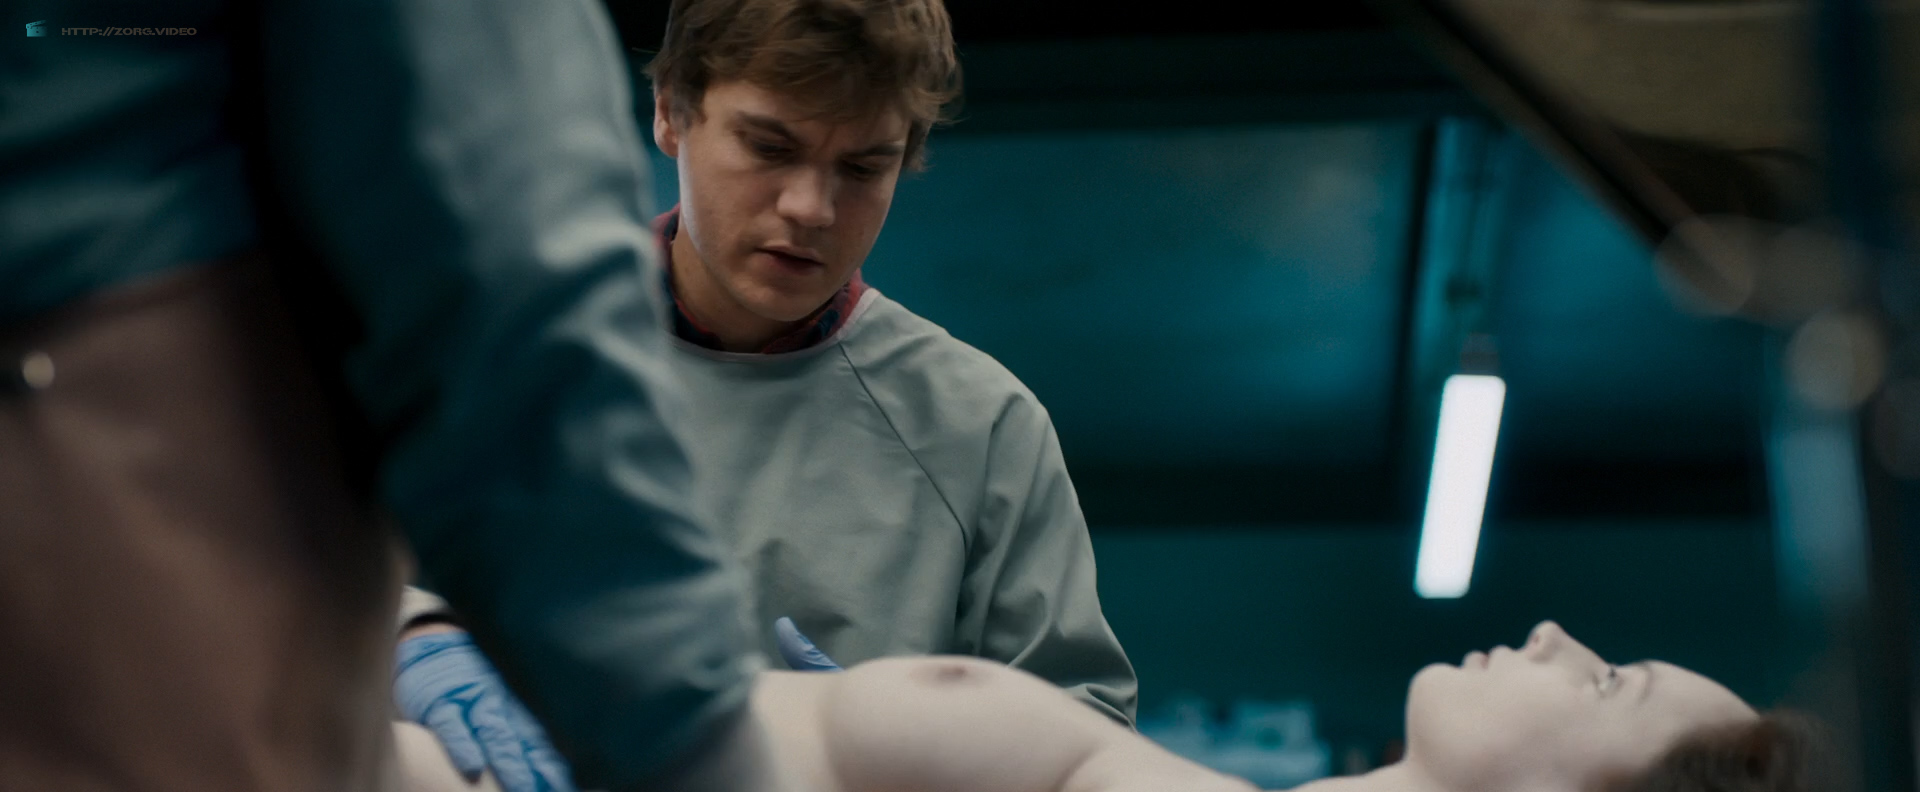 Olwen Catherine Kelly nude bush and boobs - The Autopsy of Jane Doe (2016) HD 1080p WebDl (11)